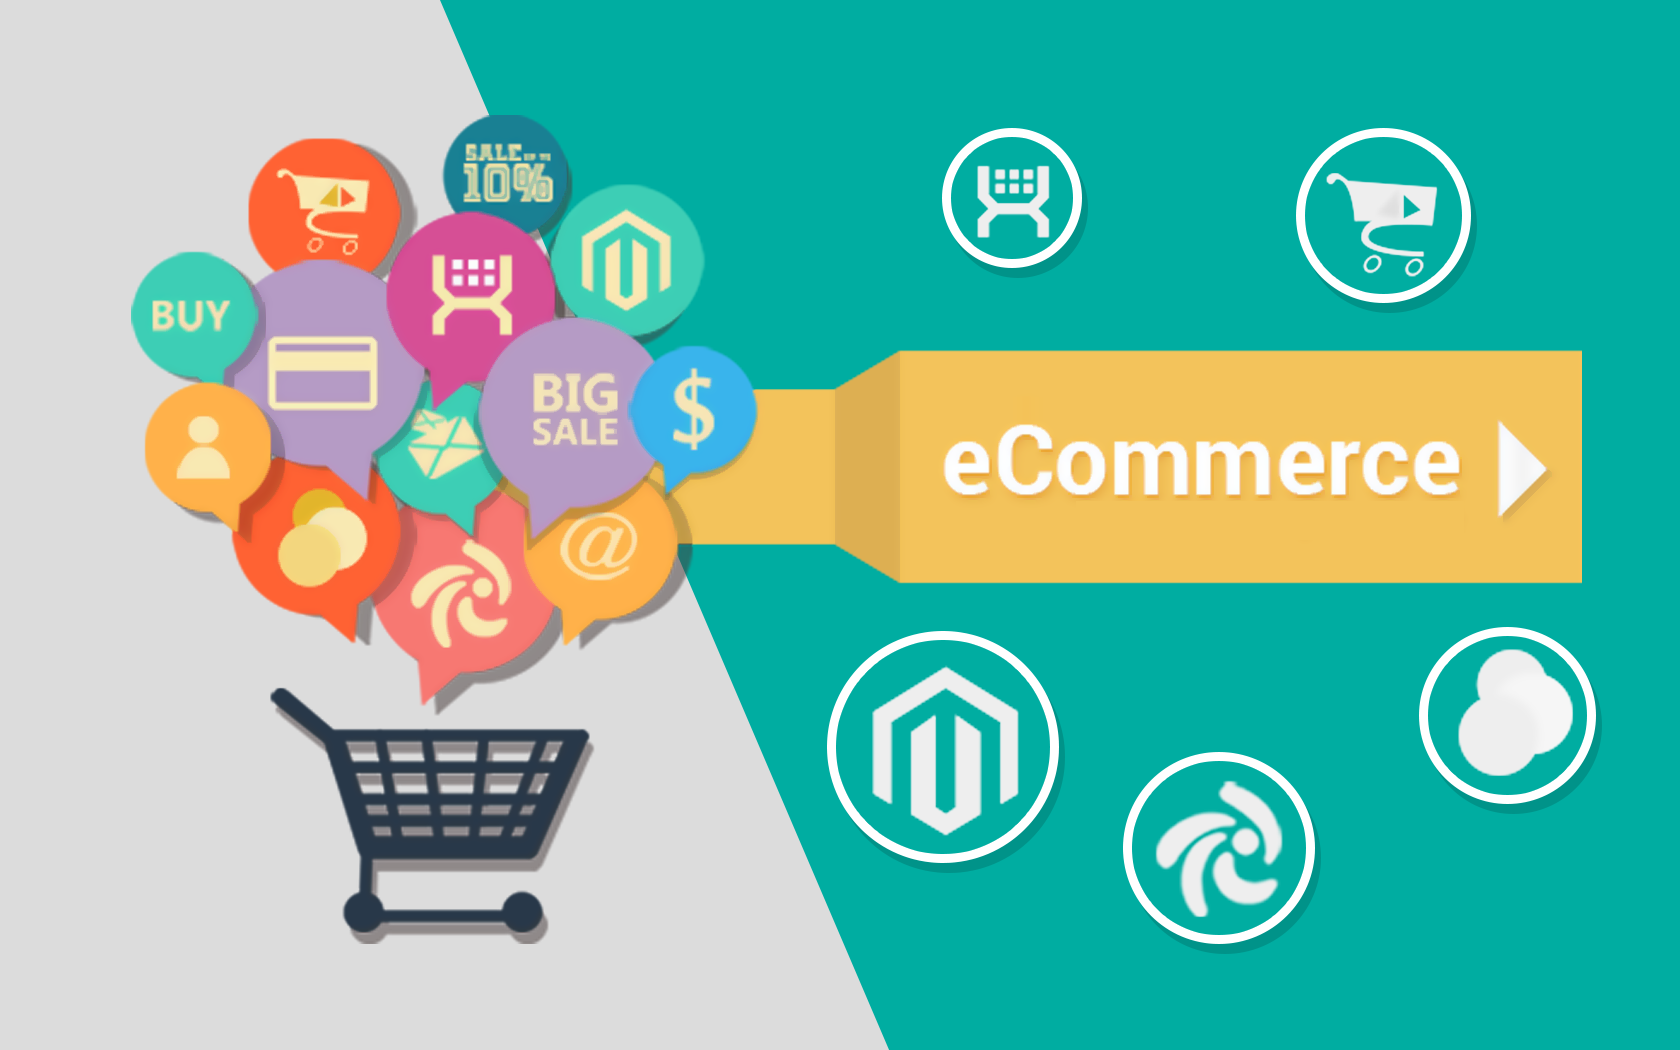 develop android, ios, mobile , web Ecommerce CMS online shopping